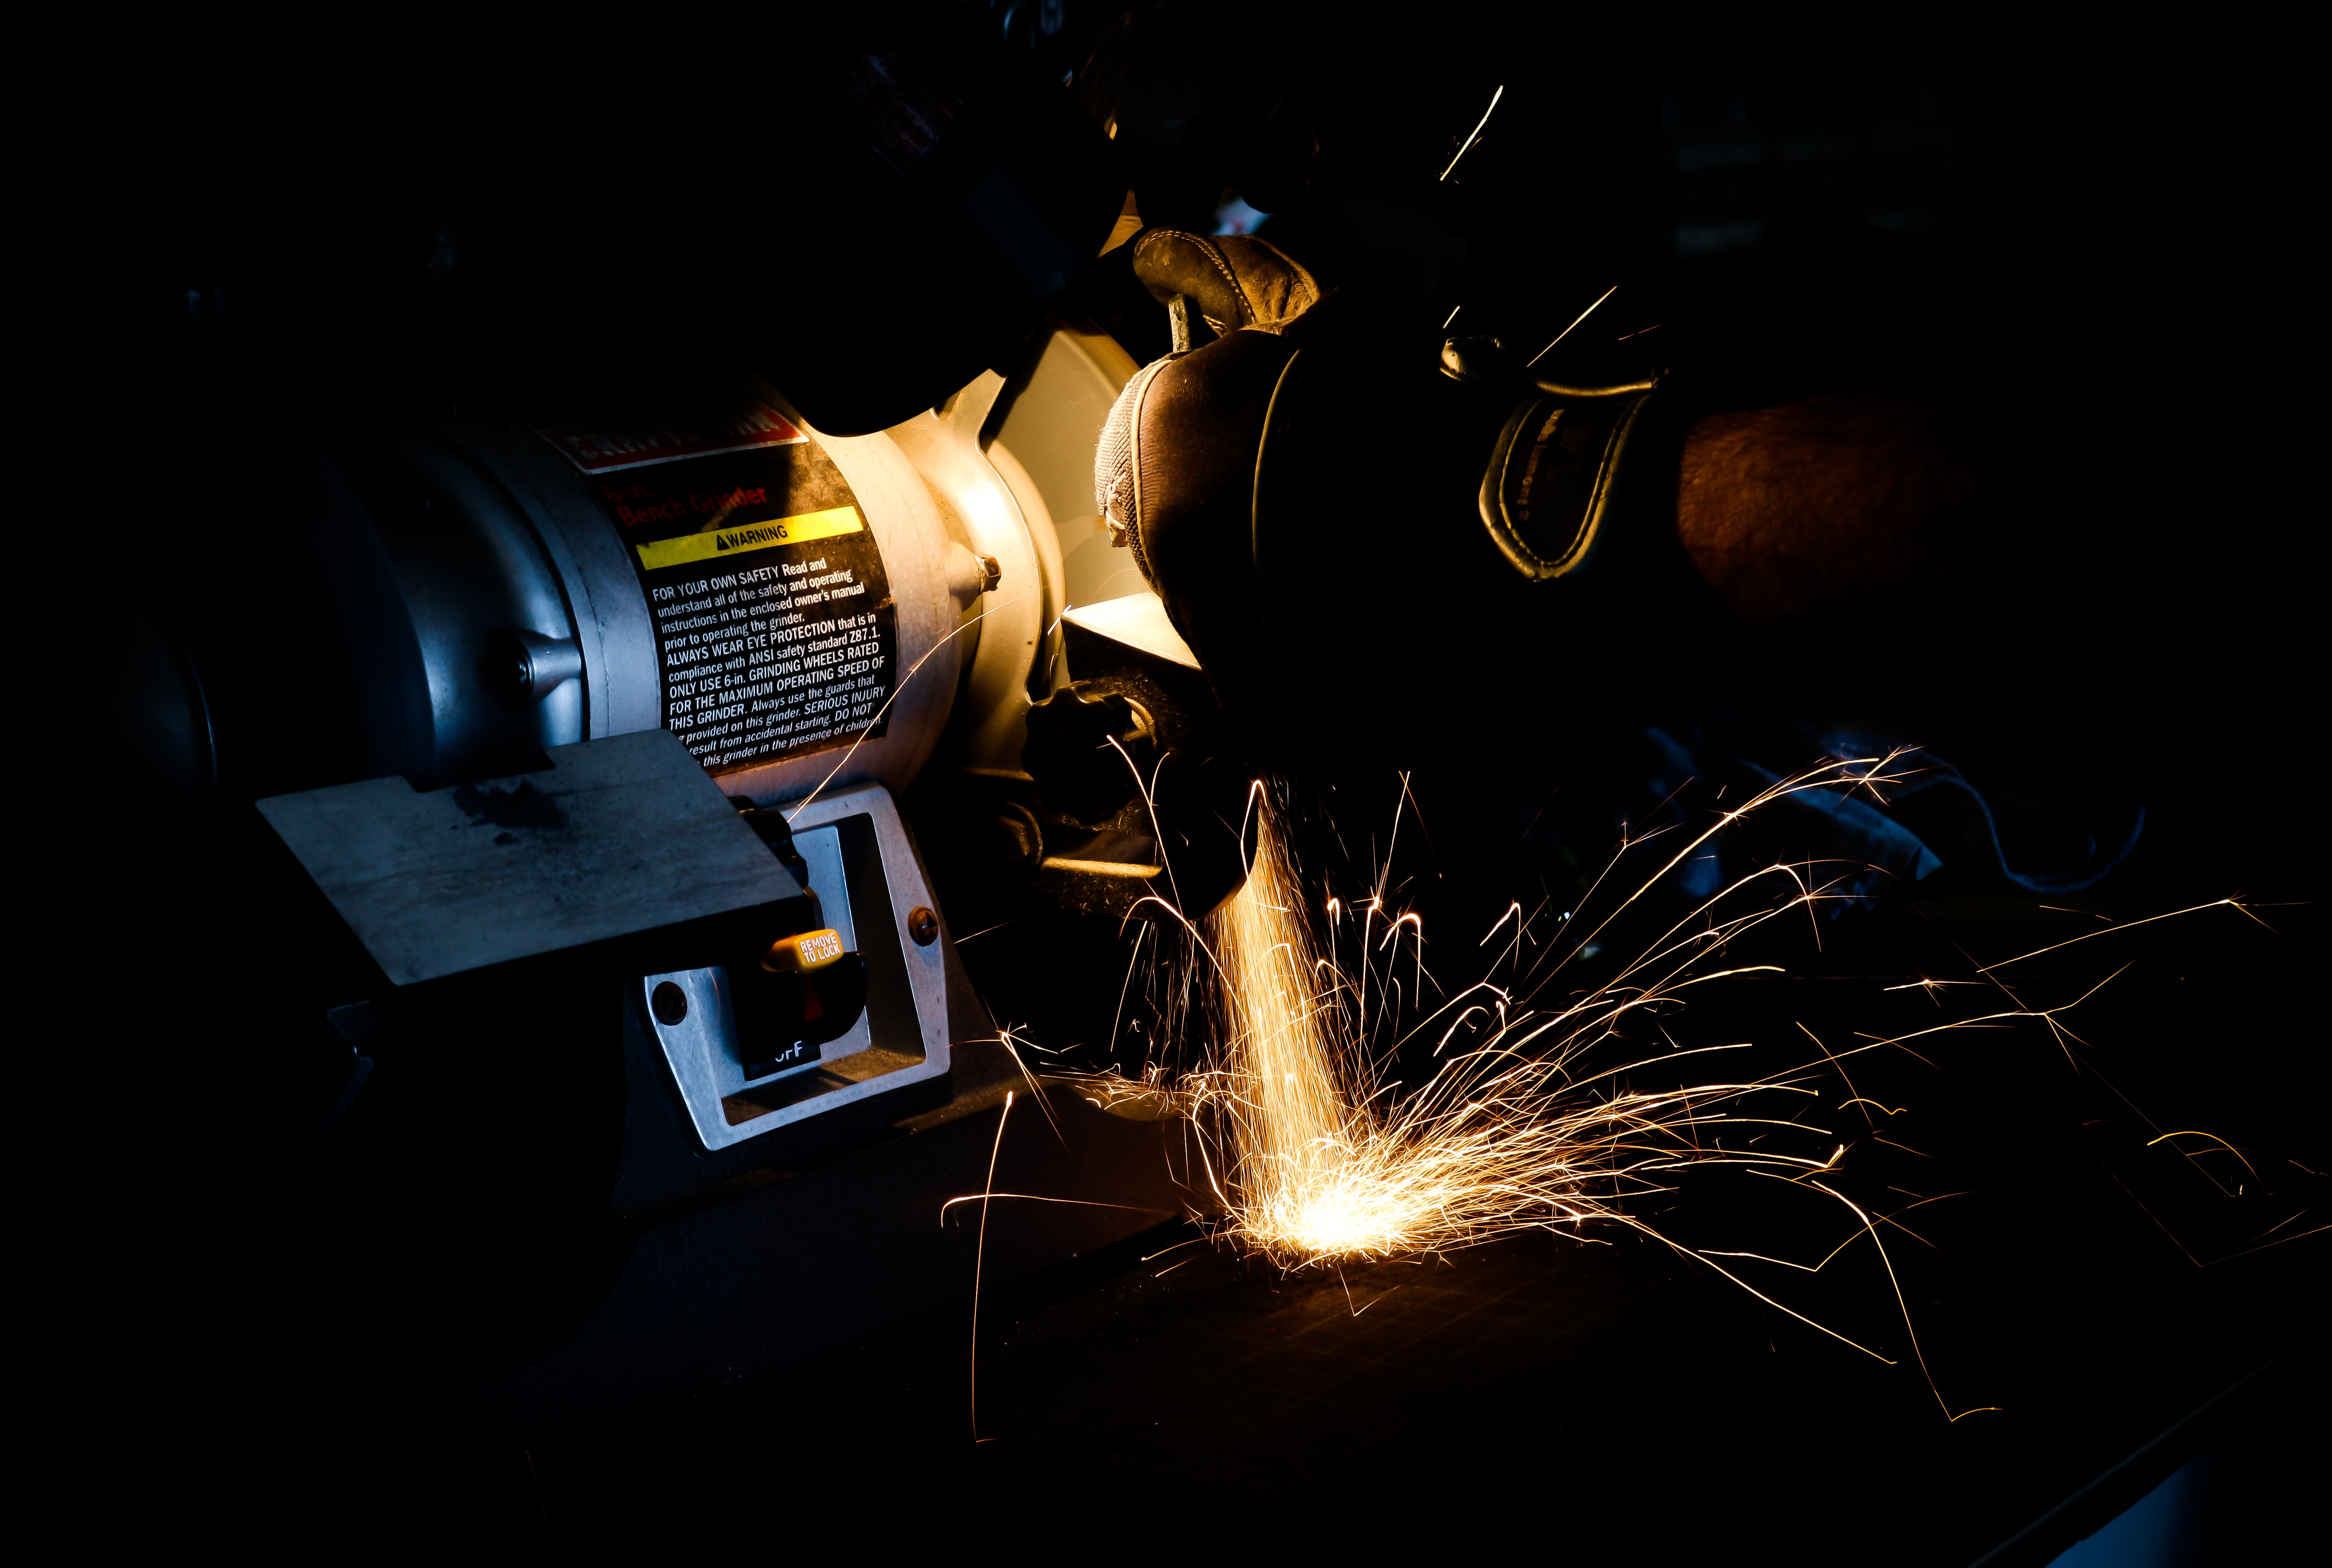 person using bench grinder